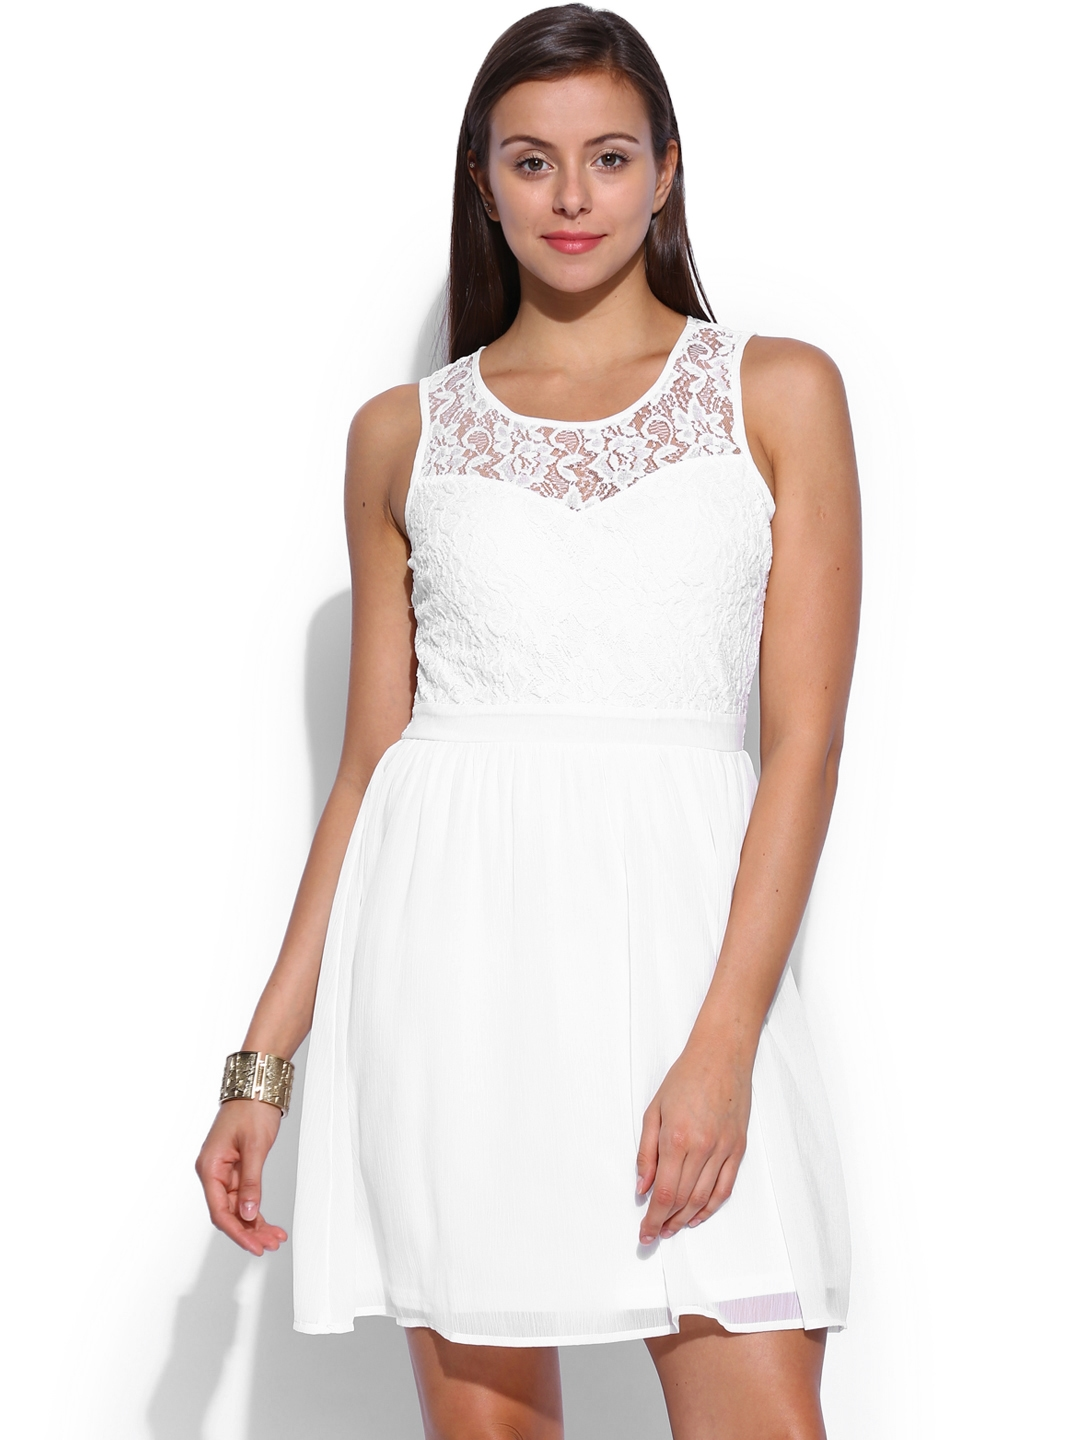 Buy ONLY White Lace Fit   Flare Dress - Dresses for Women 749954 ... 2fd110c5d